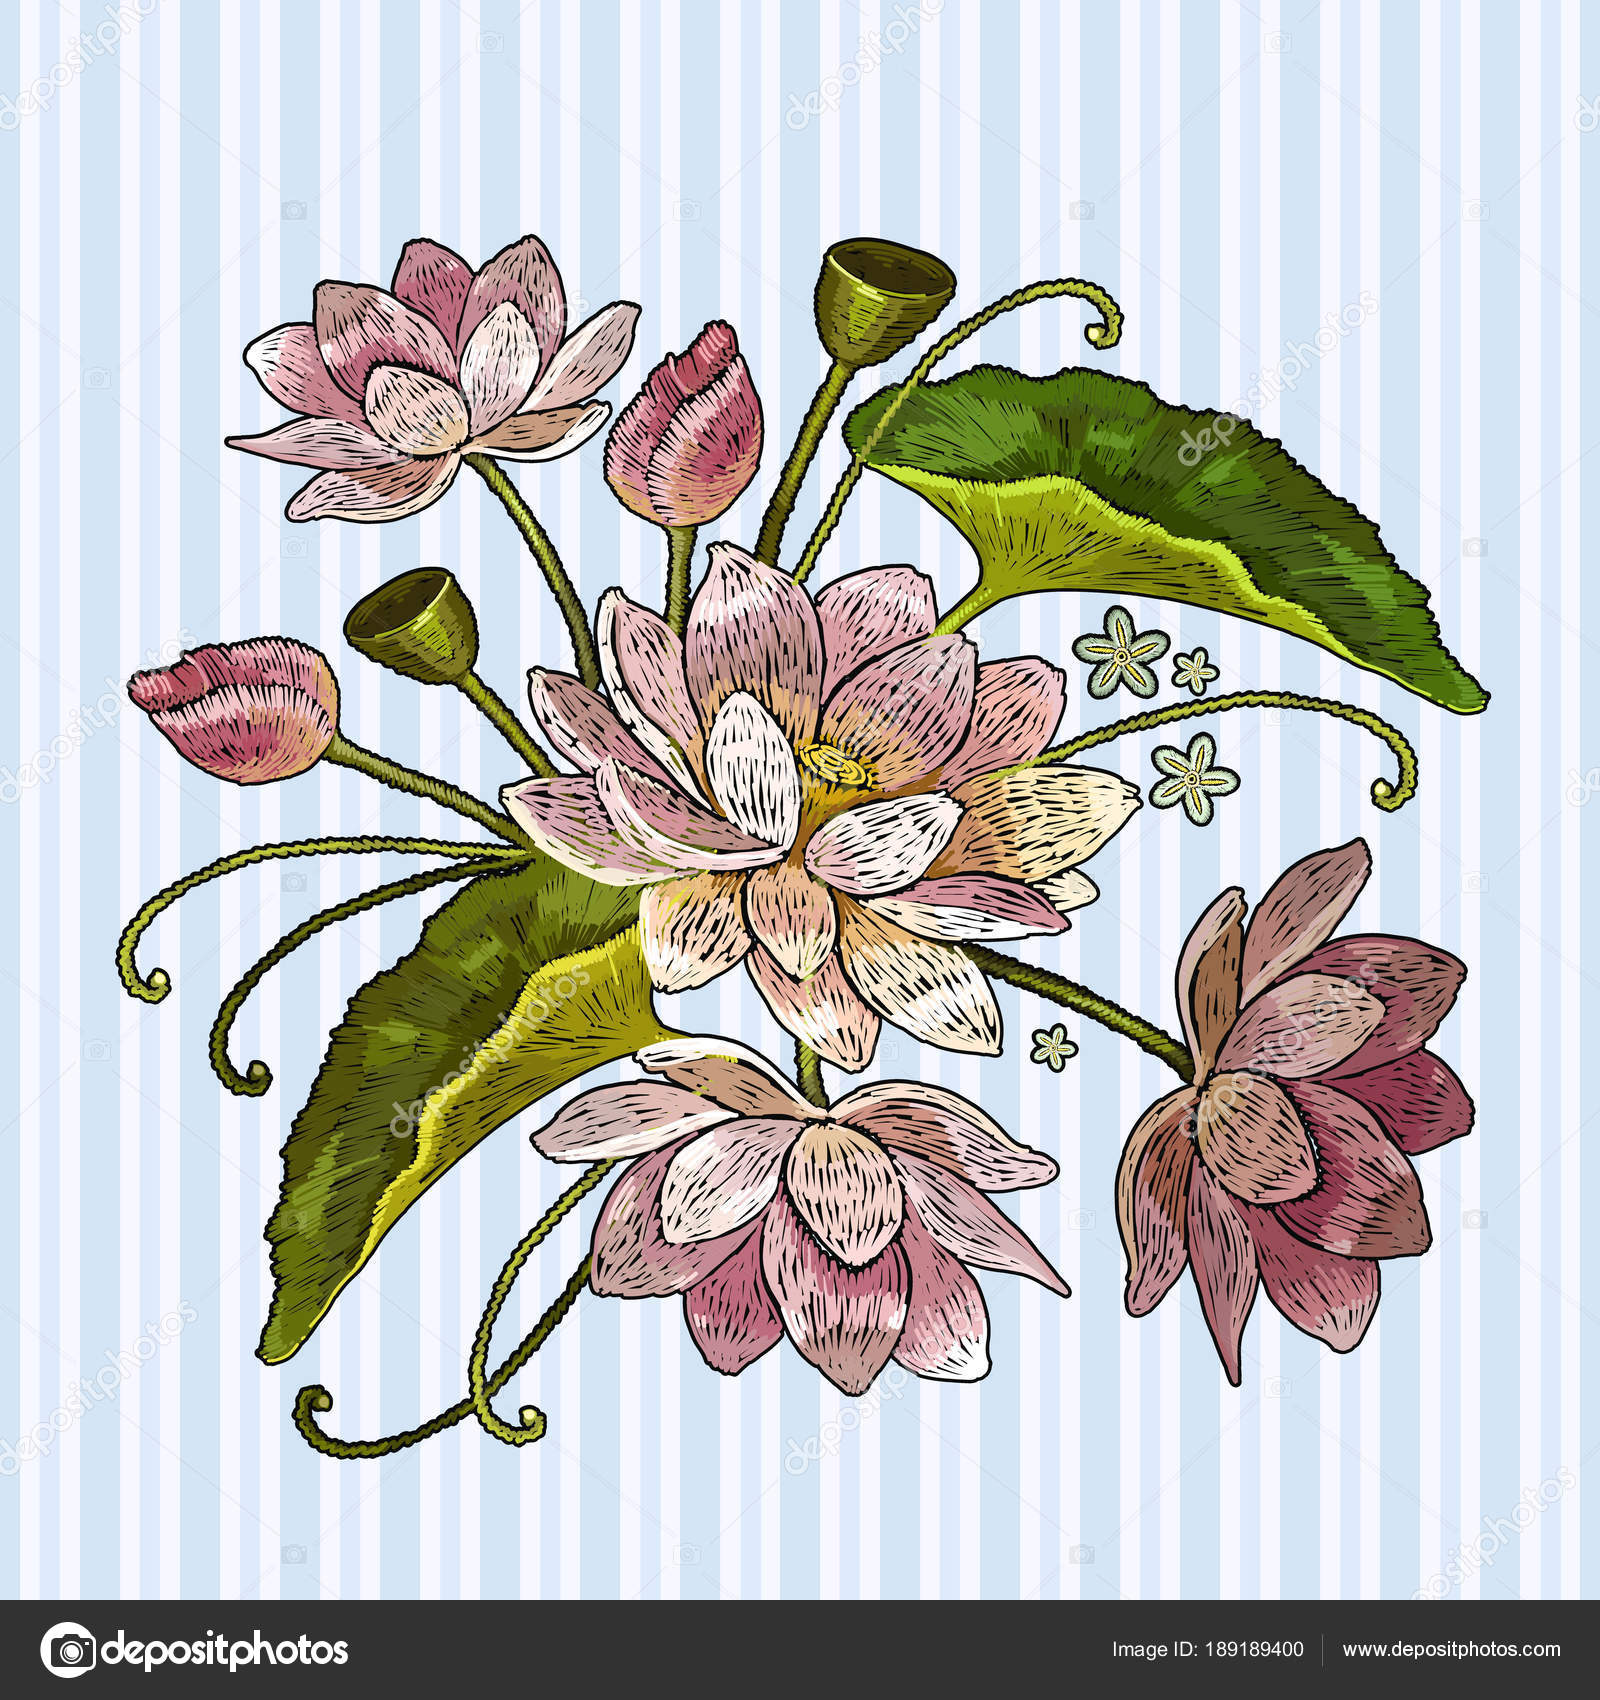 Embroidery lotus flowers clothes template t shirt design stock embroidery lotus flowers clothes template t shirt design classical embroidery pink lotuses water lily vector by nostro izmirmasajfo